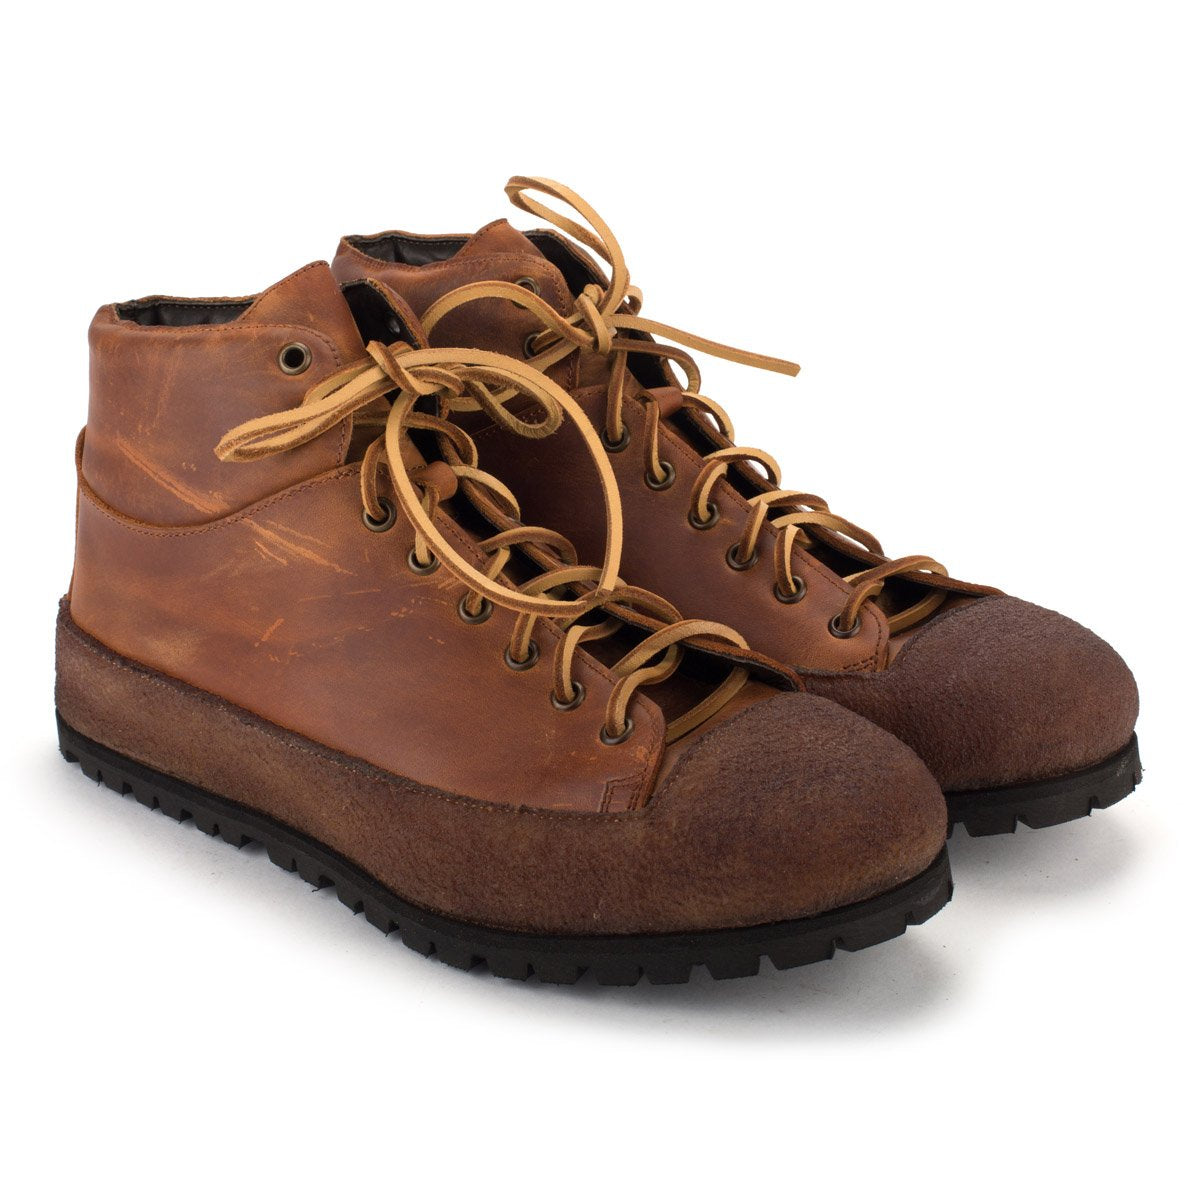 CR24 M WATER PROOF BOOTS – Tan